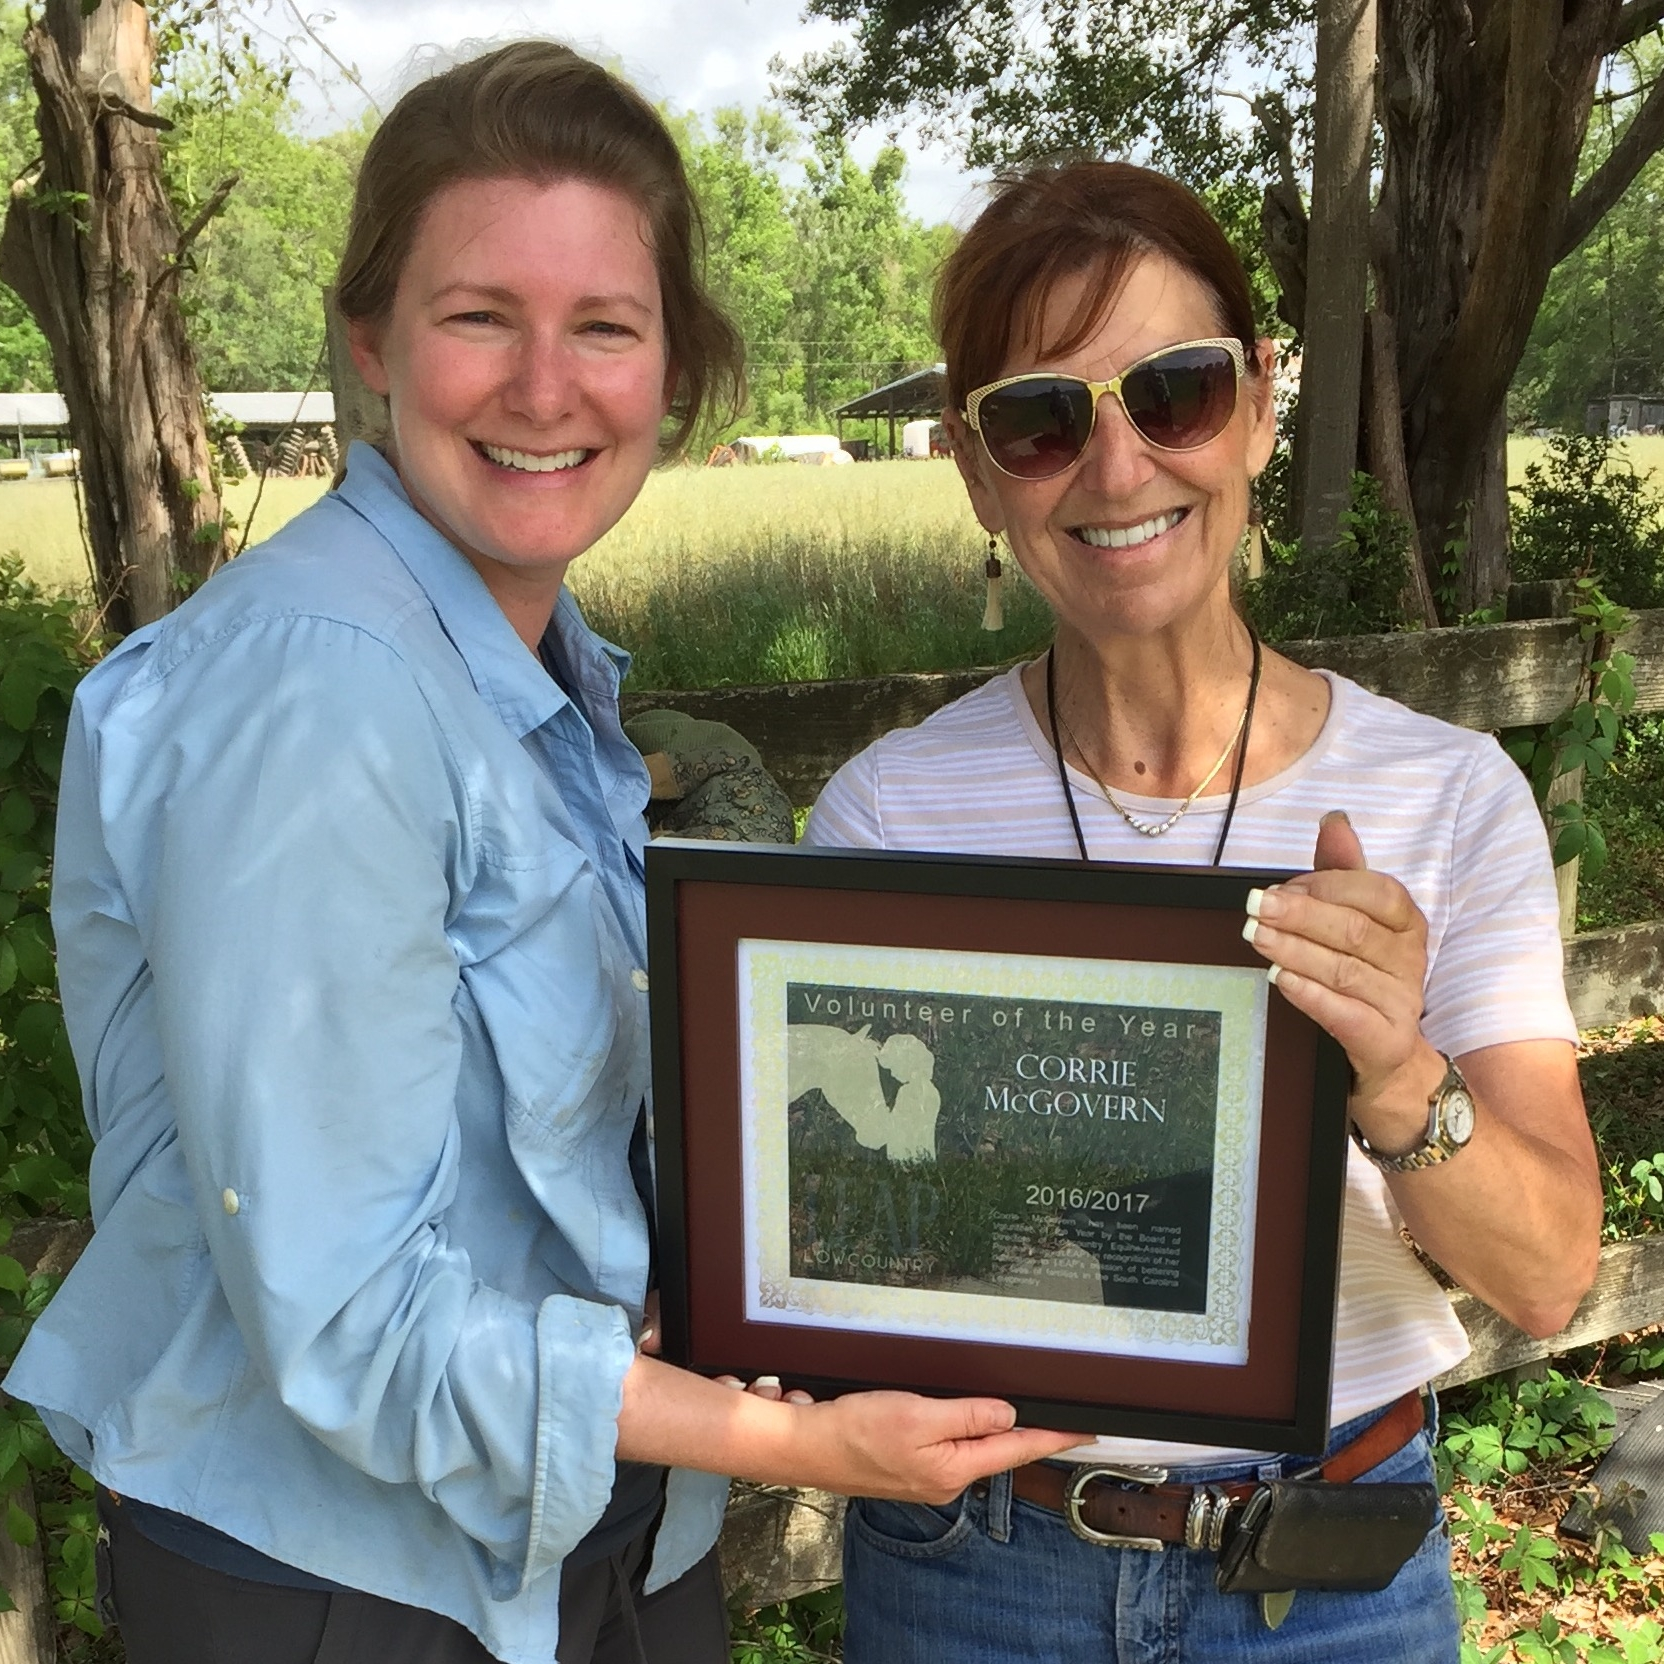 VOLUNTEER OF YEAR 2016 ~ Corrie McGovern of MCG Photography   Corrie wears many hats for LEAP, from regularly volunteering,picking up extra shifts, coordinating Day of Caring Events and scheduling hoof trimming! She is our resident photographer and the keeper of our website! We are so grateful to have her as a part of our volunteer team and we cannot thank her enough for all she does!